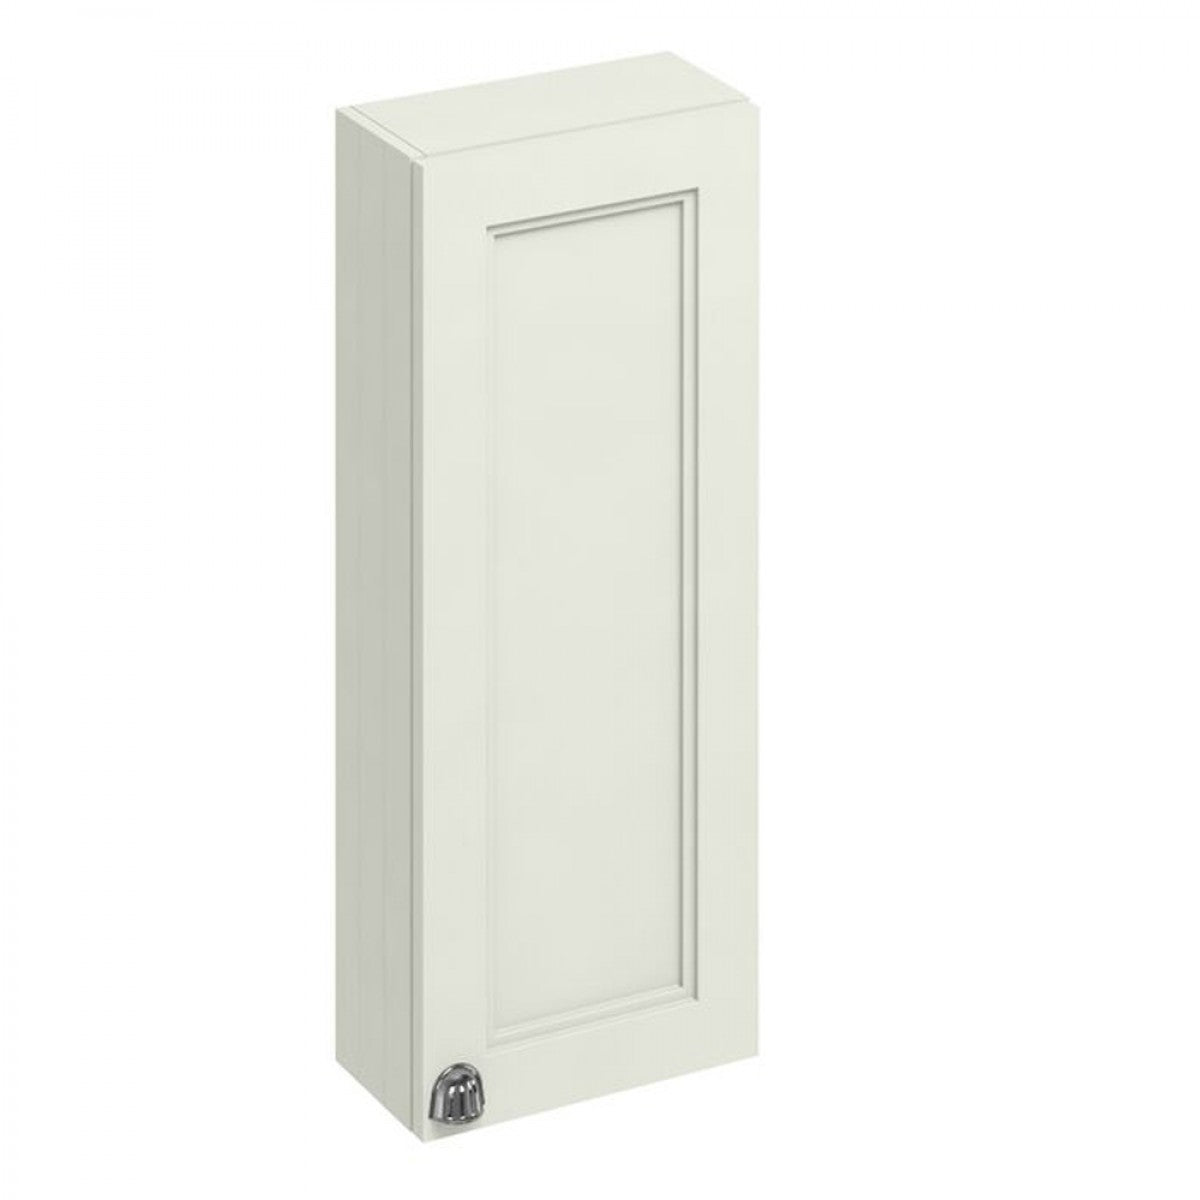 BURLINGTON 30CM SINGLE DOOR WALL CABINET